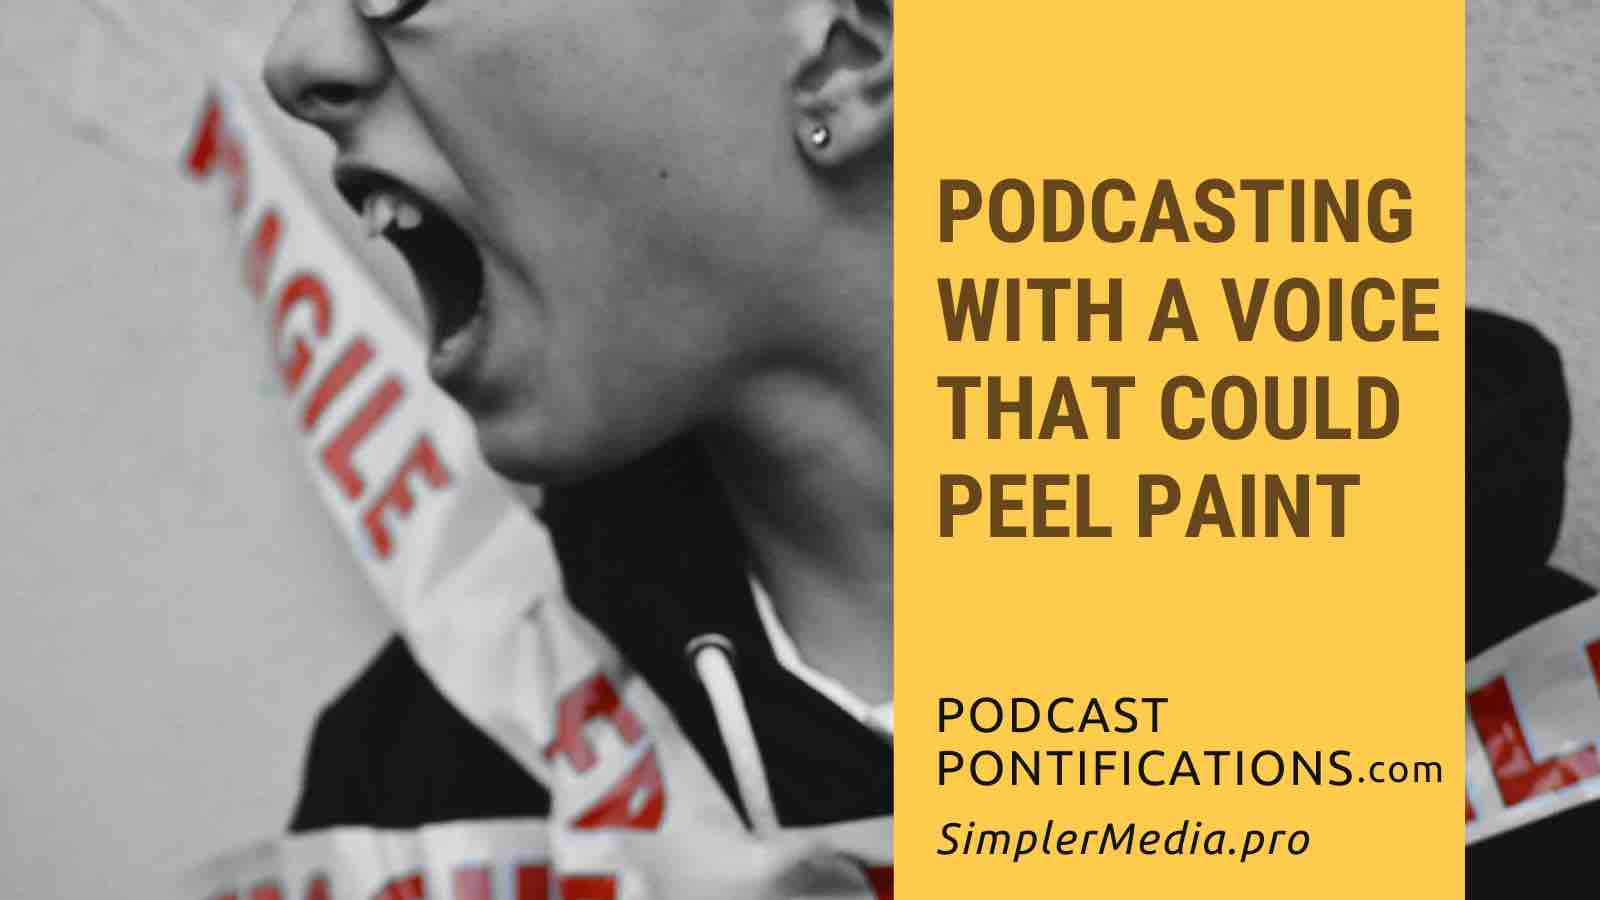 Podcasting With A Voice That Could Peel Paint